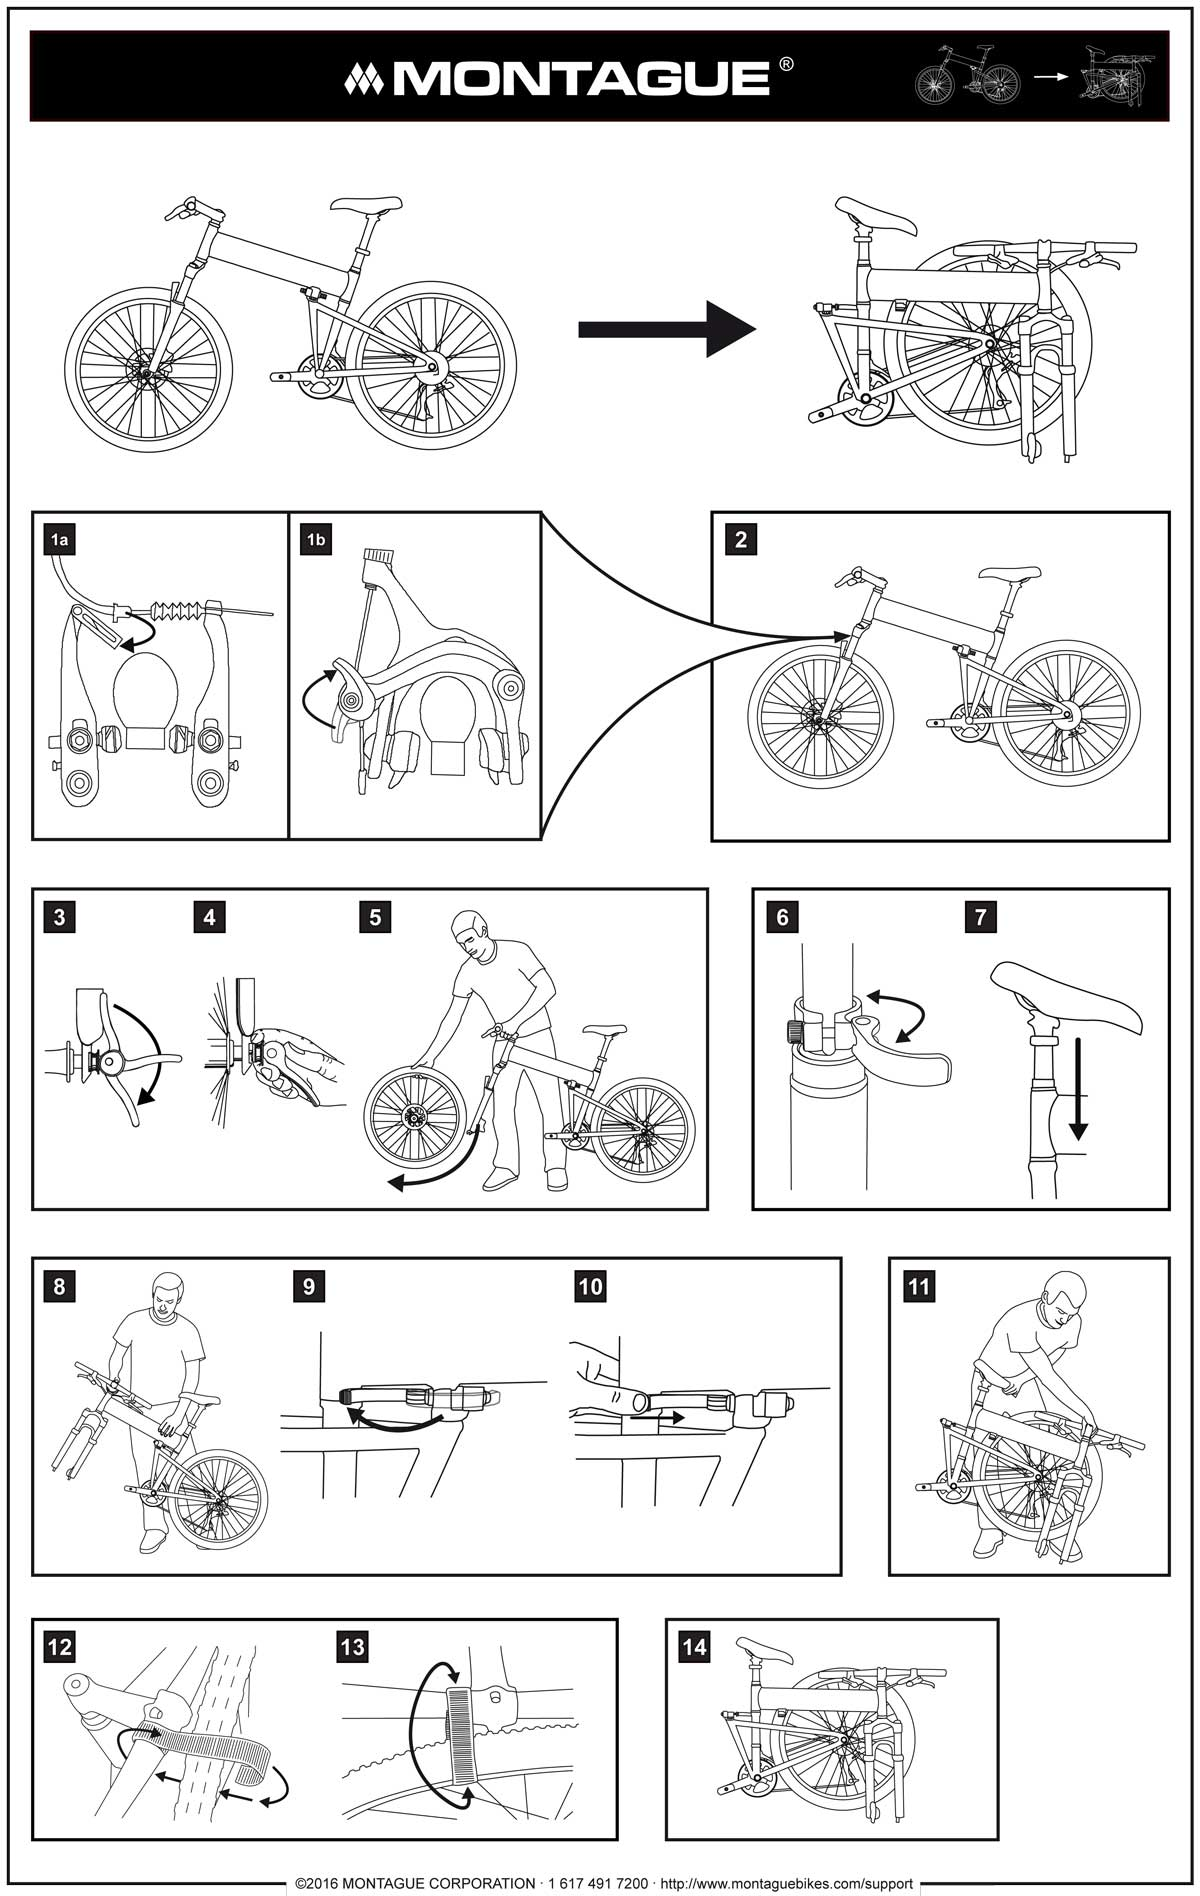 Montague Bike Folding Instructions